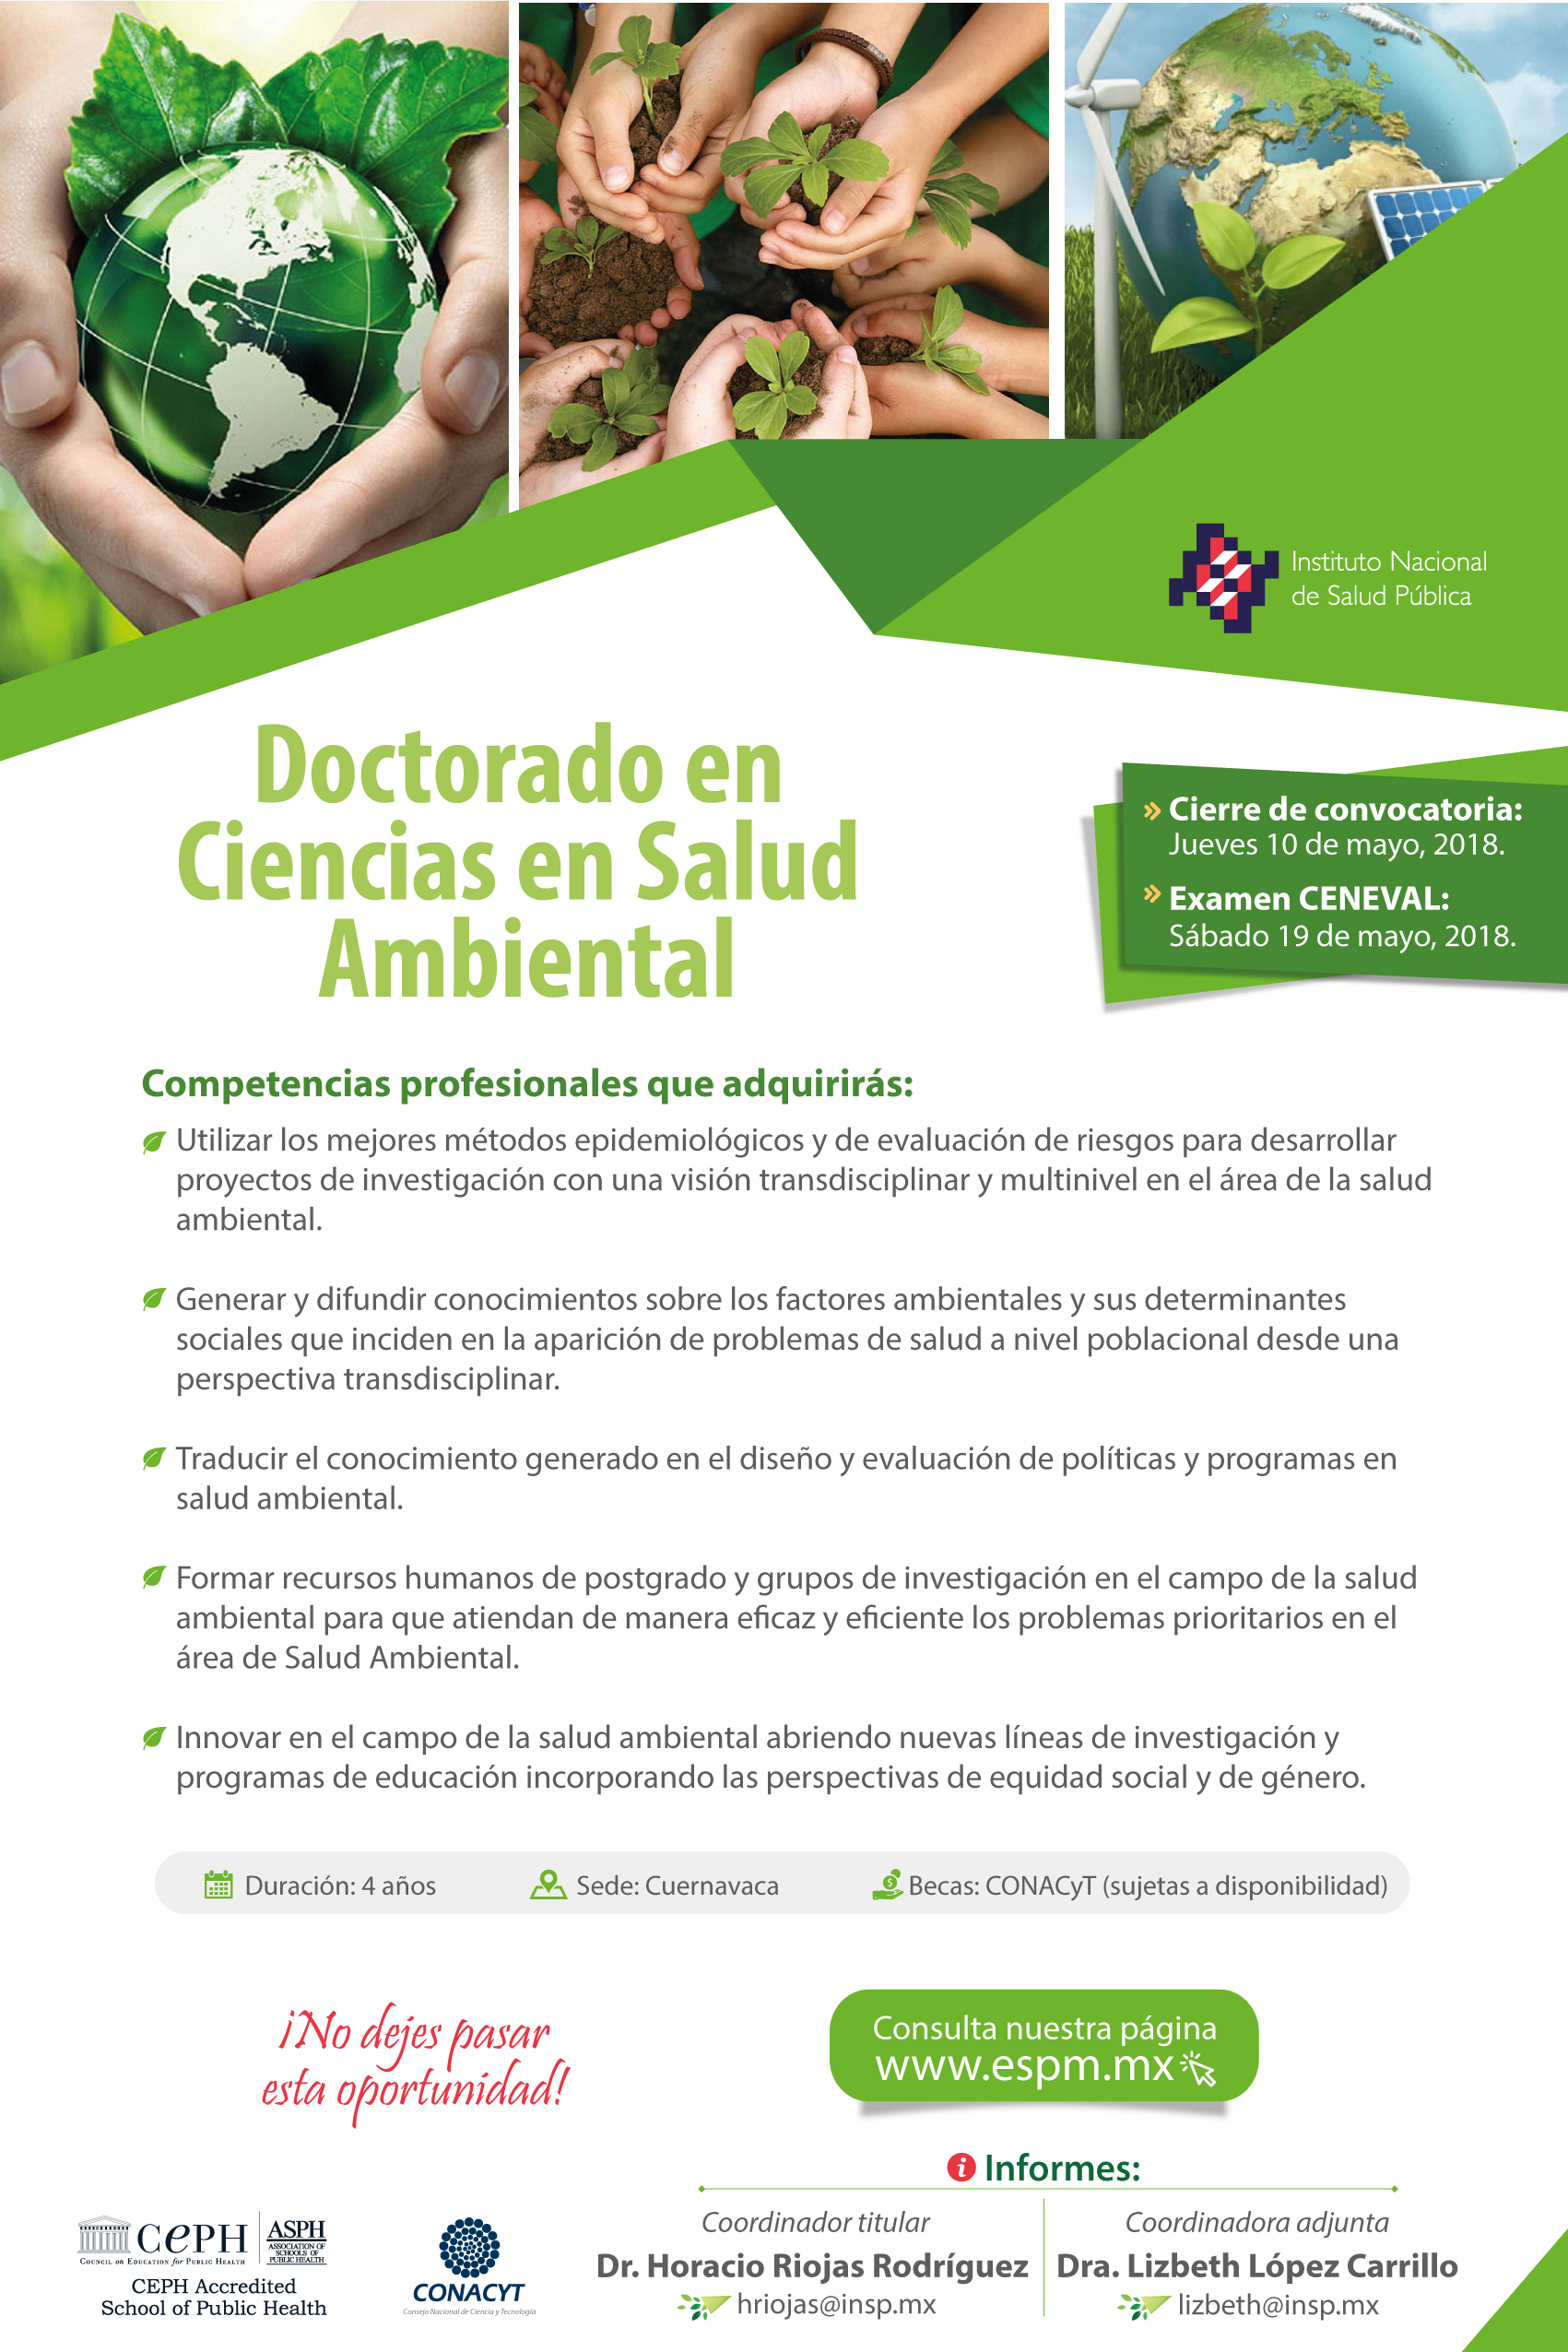 180209 CARTEL DOCTORADO CIENCIAS SALUD AMBIENTAL